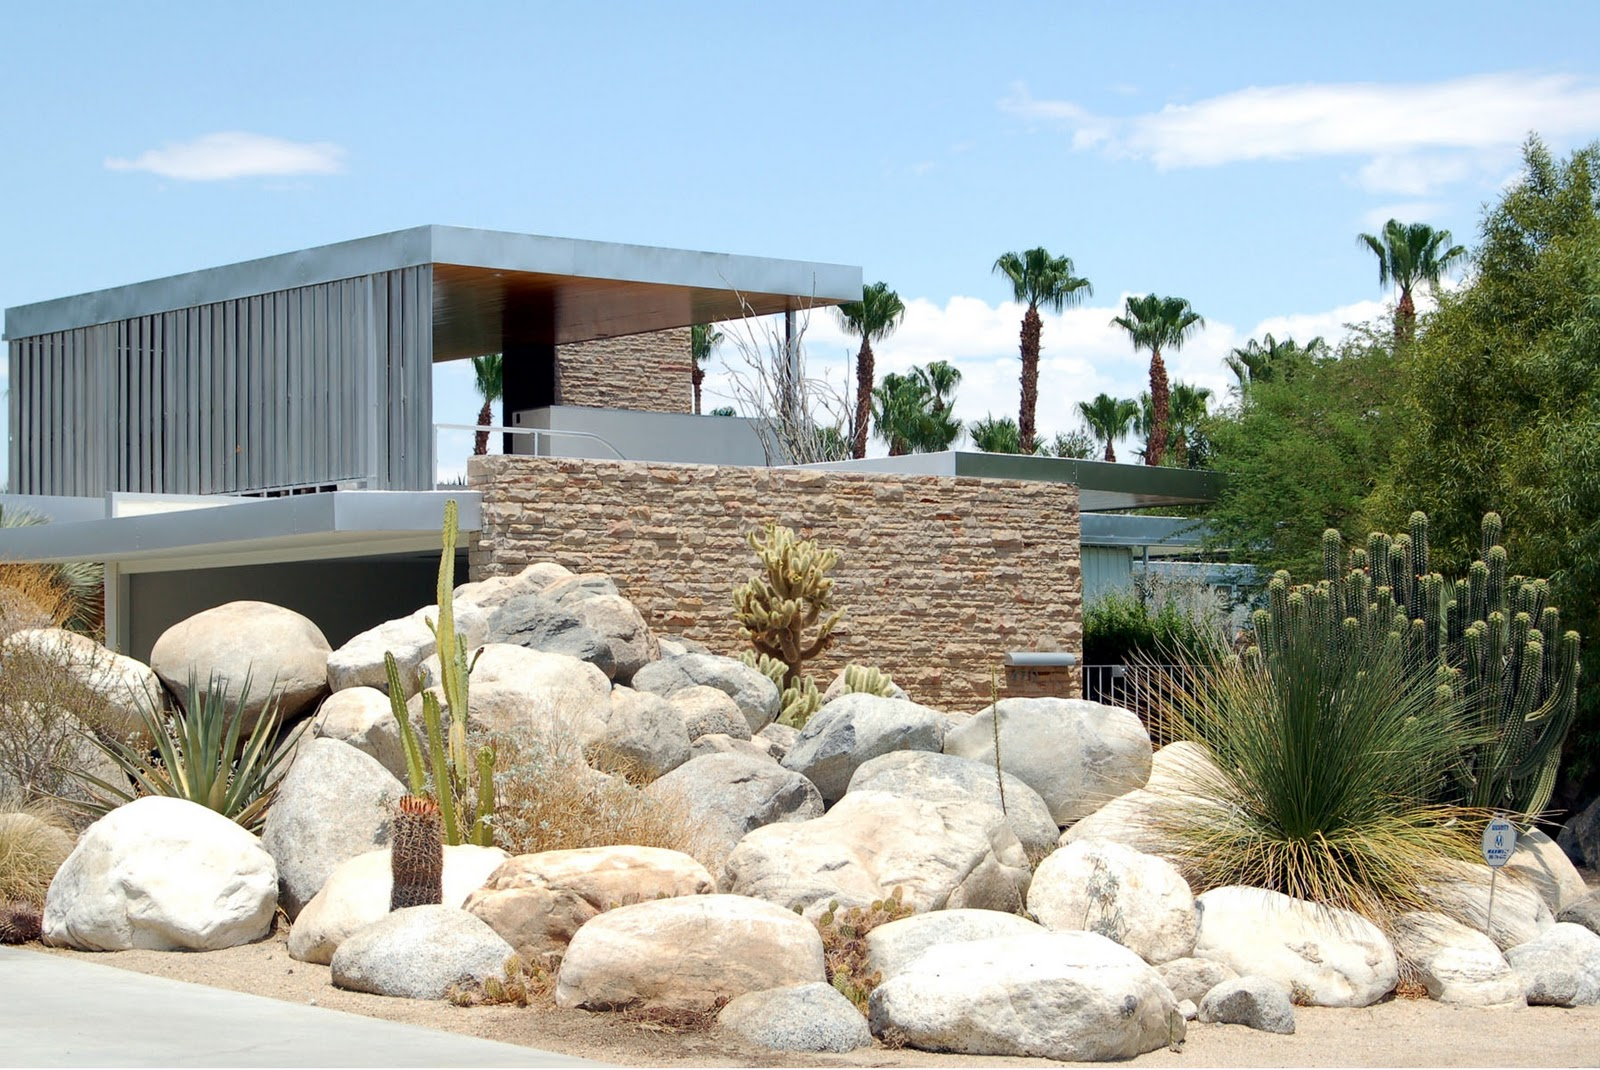 Landscaping ideas mid century modern design by Modern desert landscaping ideas